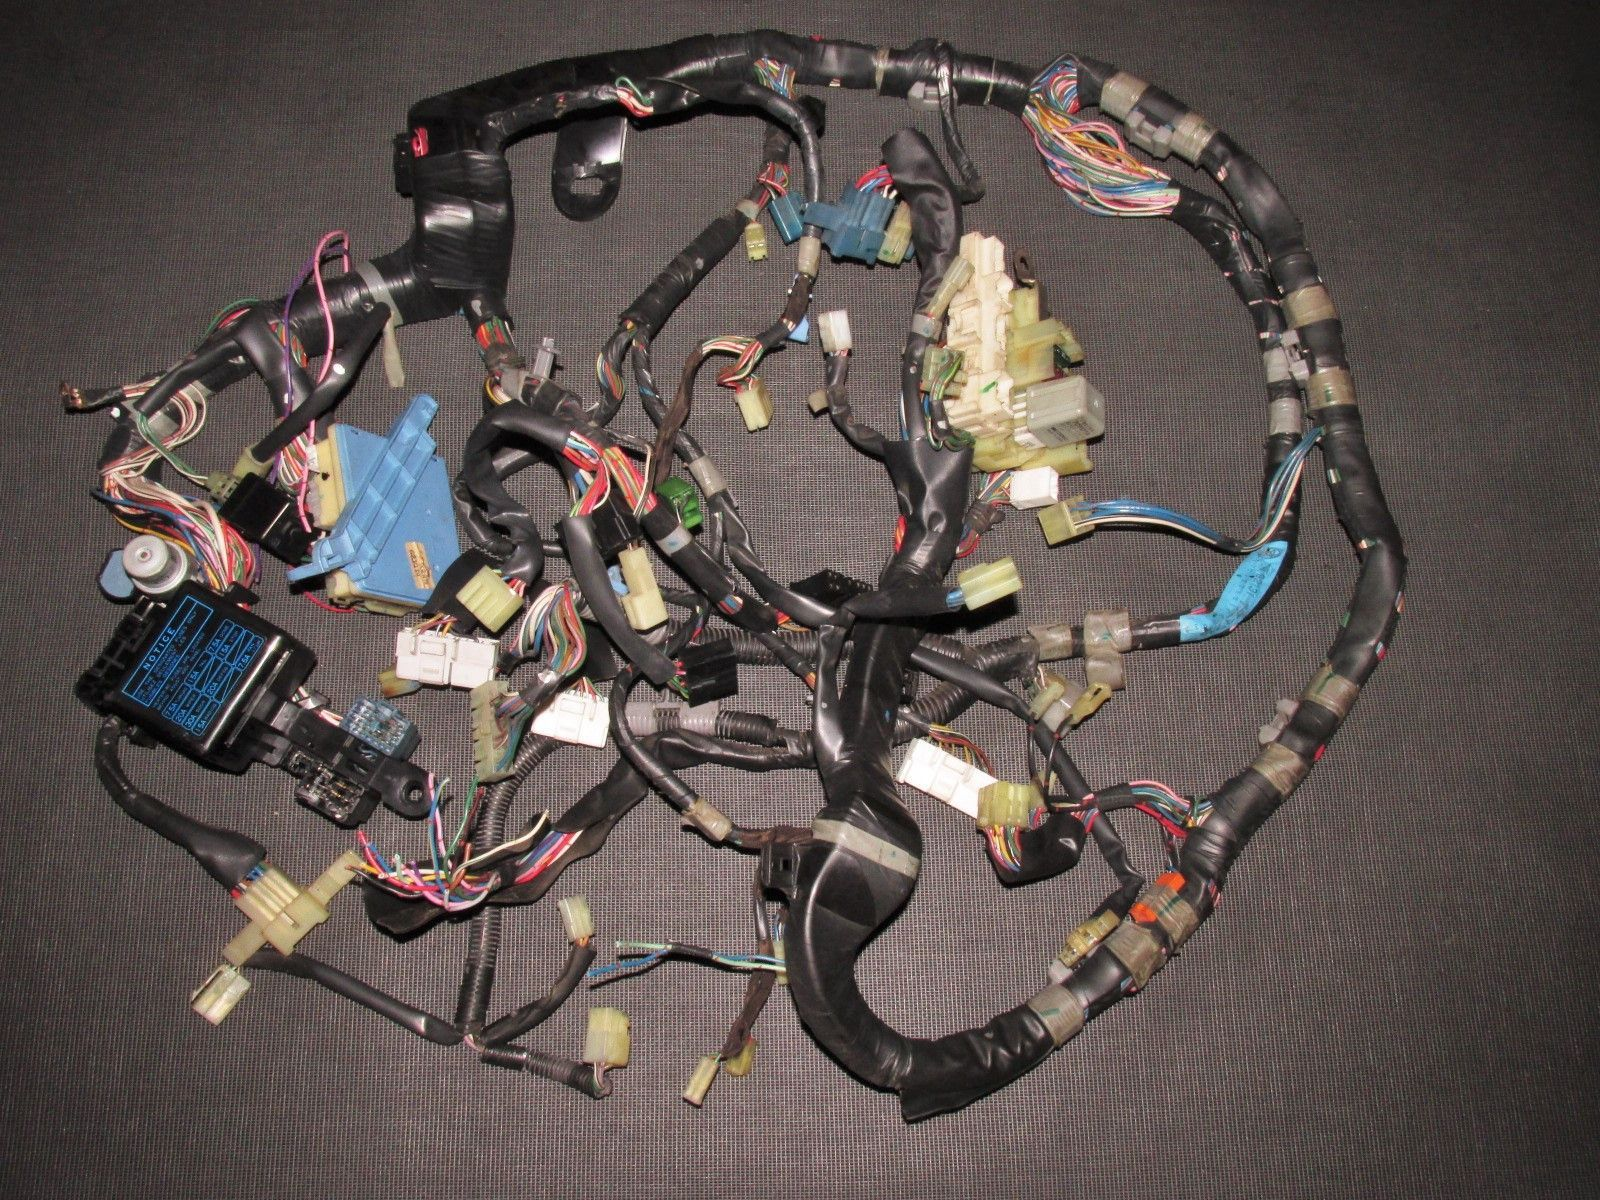 mr2 wiring harness wiring diagram user mr2 2gr wiring harness mr2 wiring harness [ 1600 x 1200 Pixel ]